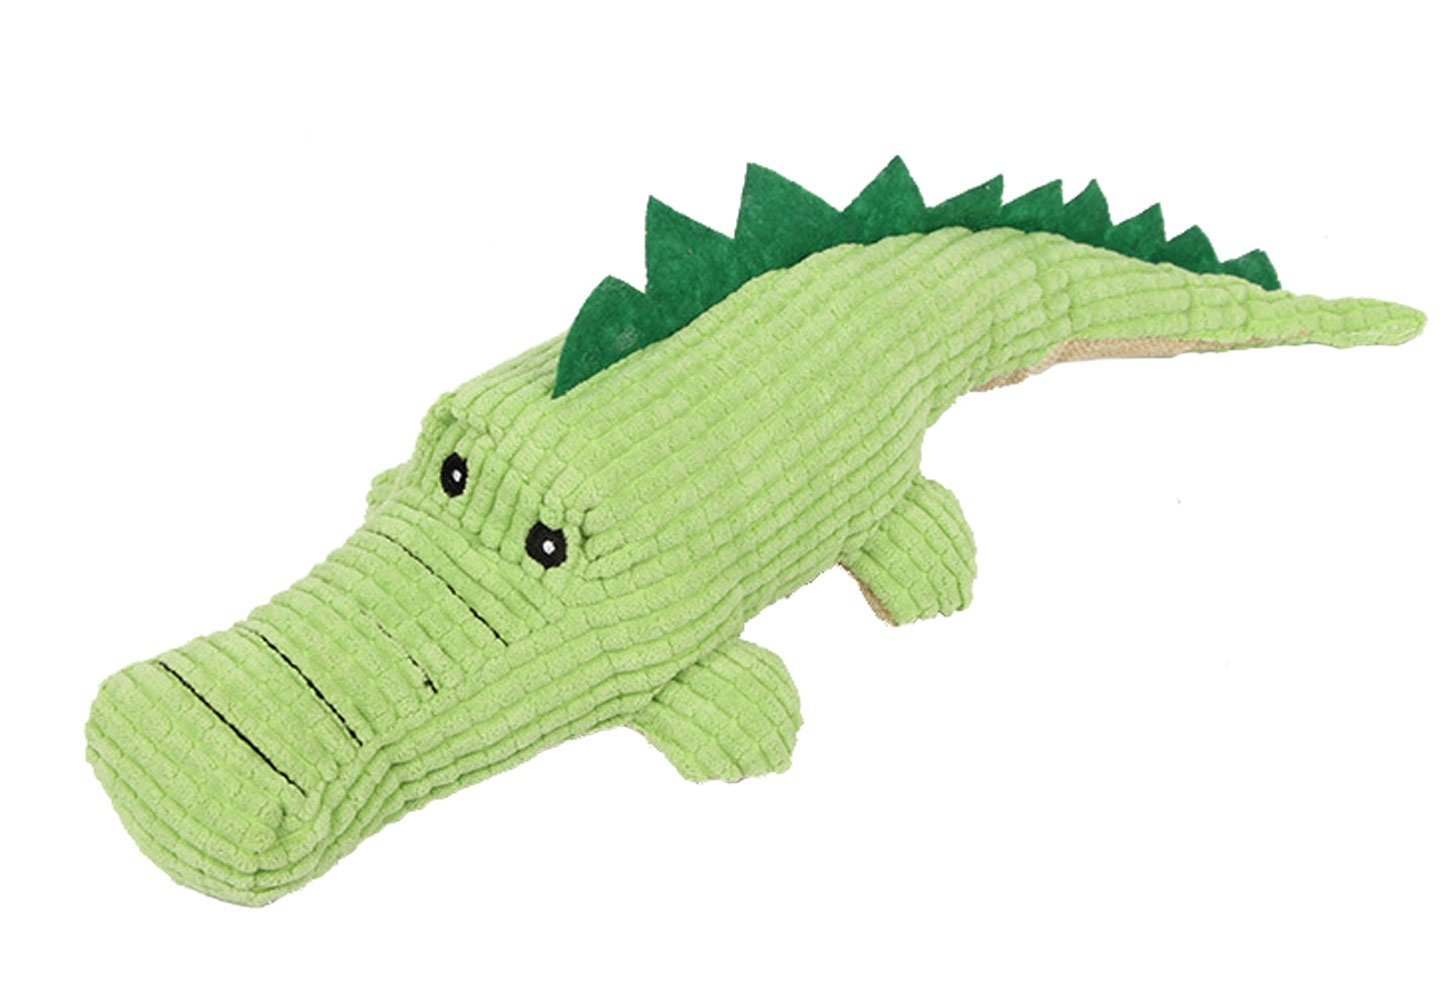 Pet Knots Squeak Plush Dog Toy Cat Toy,Chew Toy,Teeth Clean Doll,Super Crocodiles,for Pet/Animal,Eco-Friendly Cotton and Flannel Crocodiles Also For Kids Children